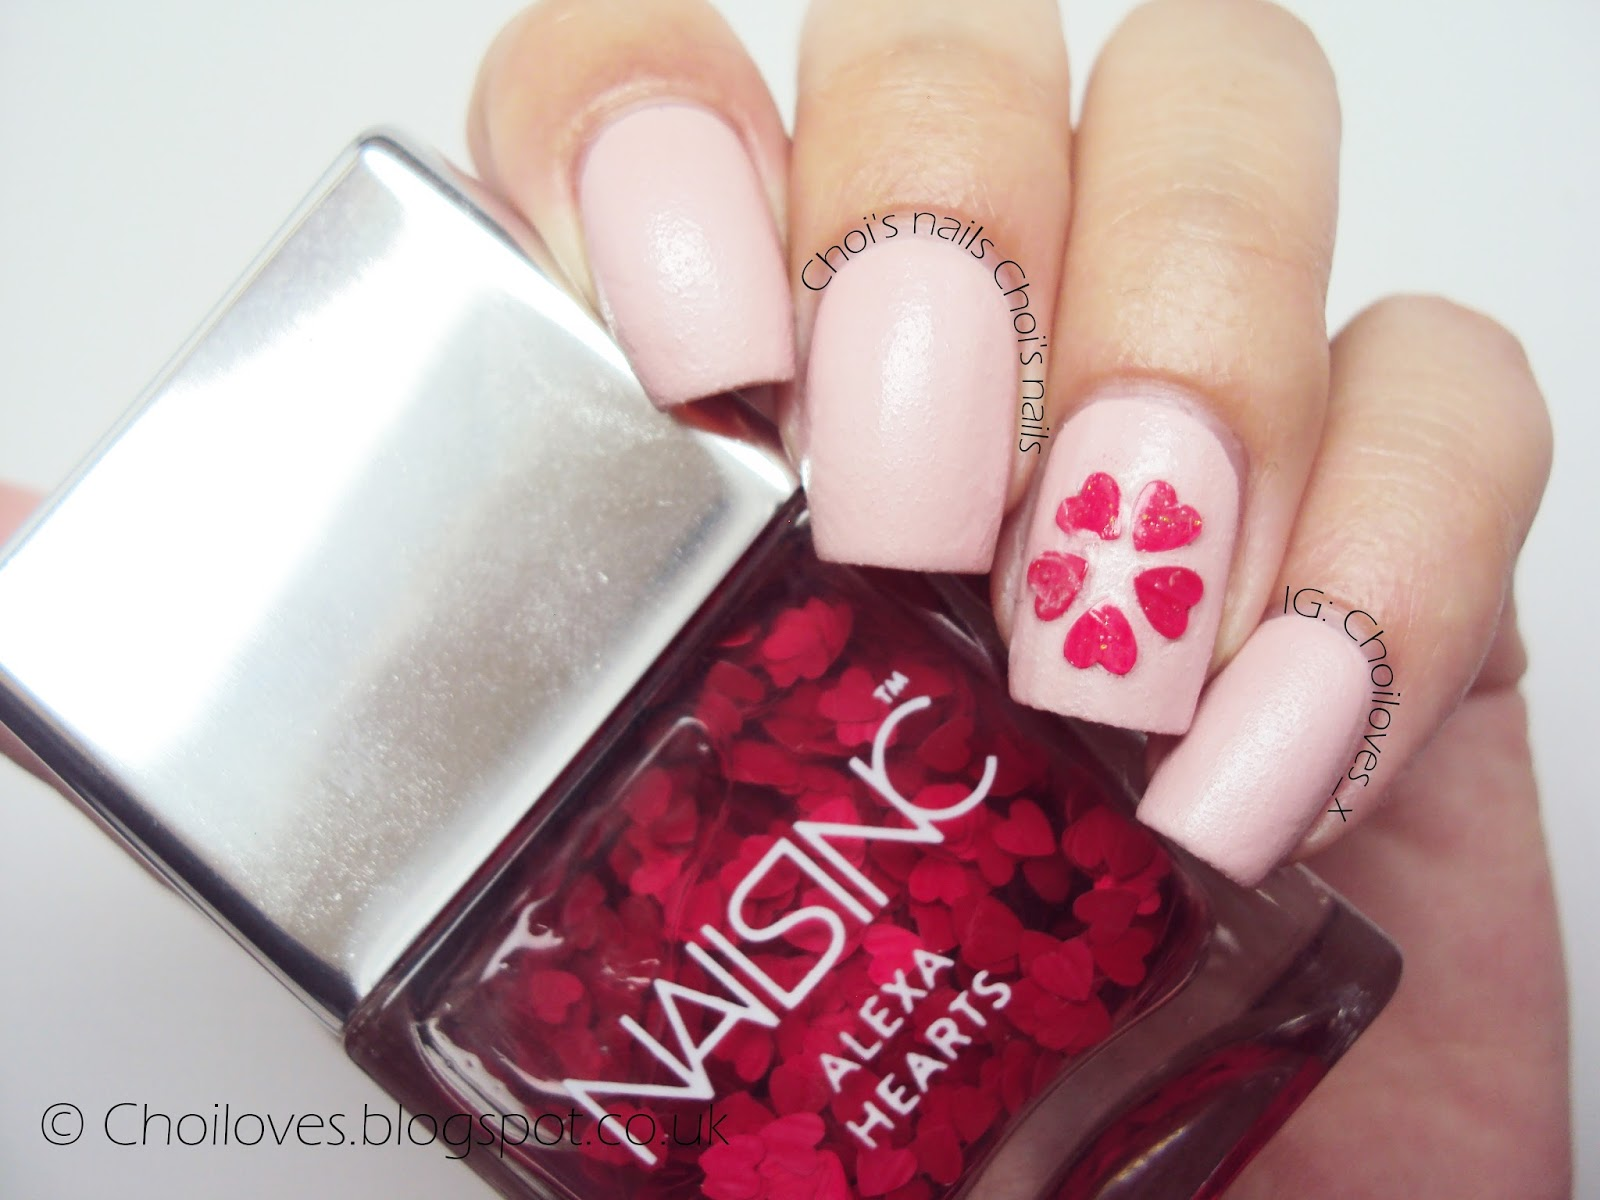 To Save Time I Placed It Only On The Ring Finger Nail In A Flower Shape And Let Rest Be